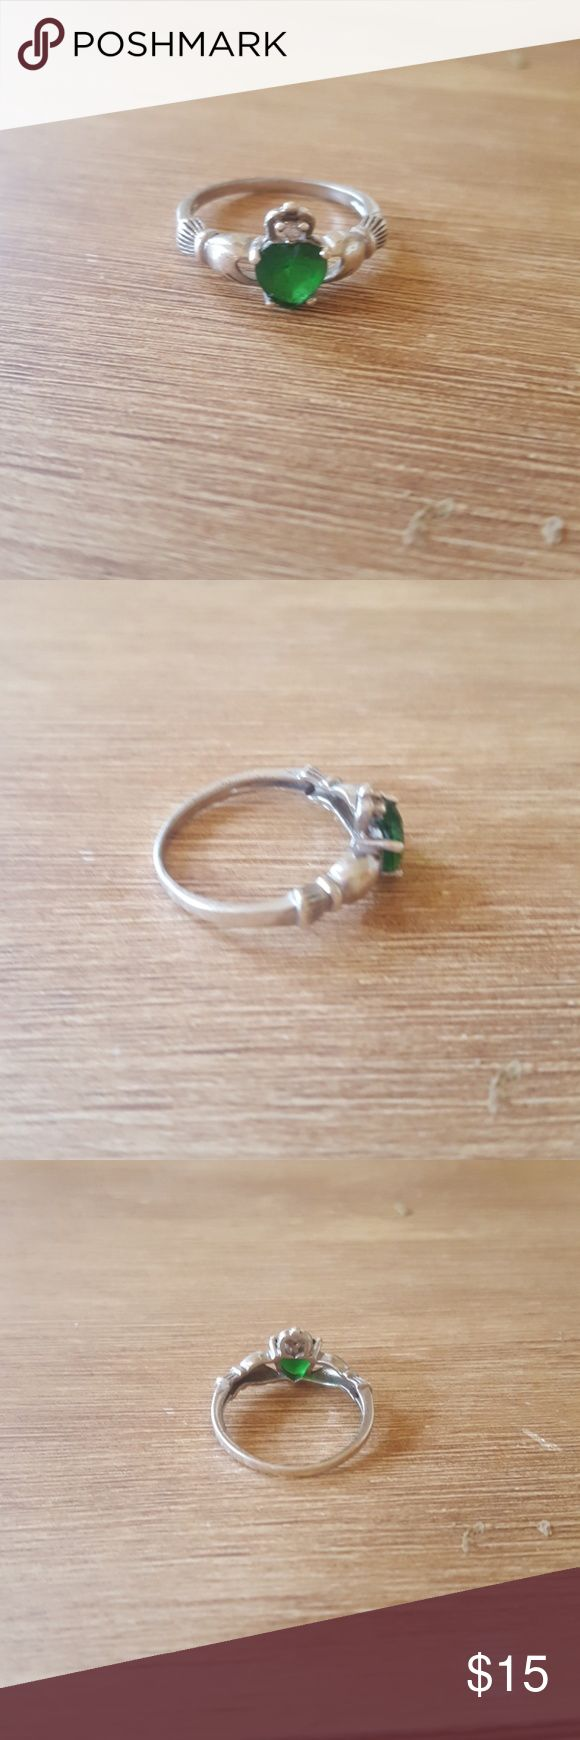 Silver claddagh ring with emerald stone This is a size 6 silver claddagh ring with a emerald center stone. There is a clear crystal at the top as well. It was a gift so I am unsure of the original price. Jewelry Rings